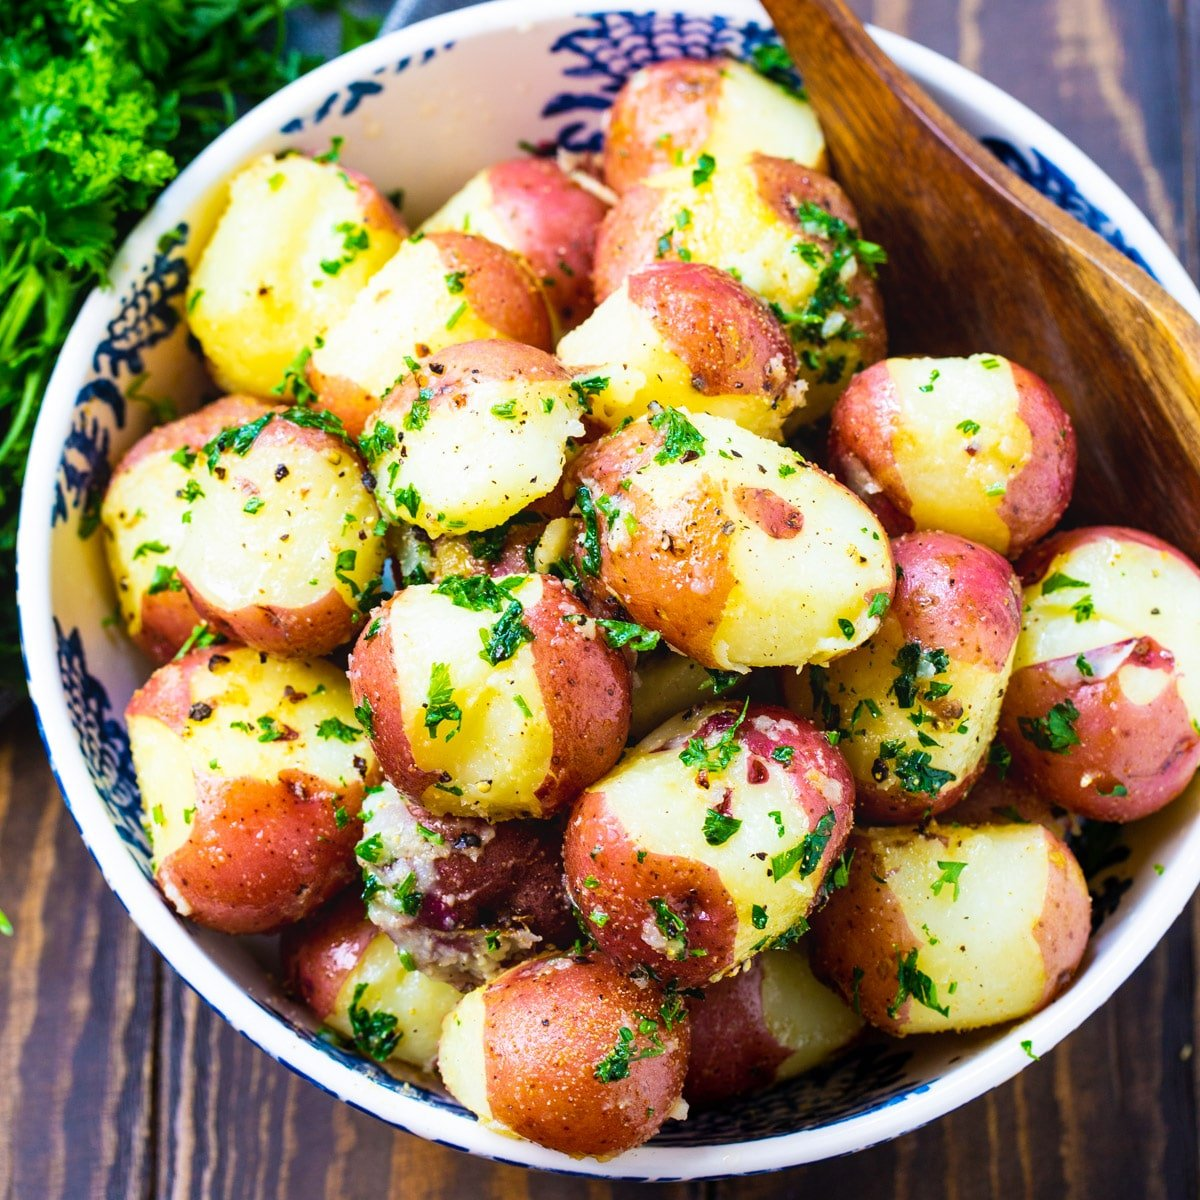 Buttered Parslied Potatoes in a serving bowl.